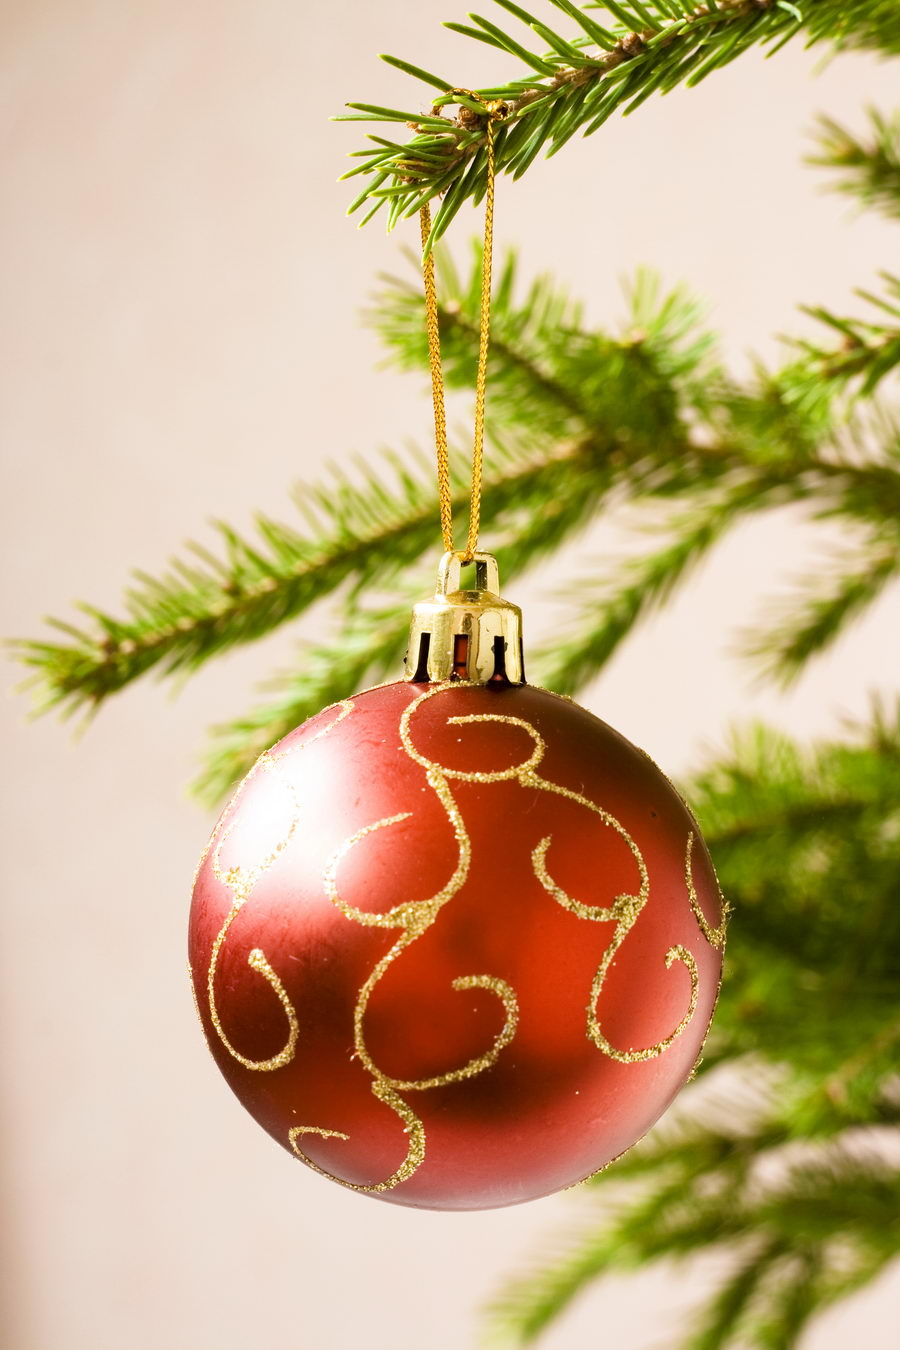 christmas decoration, Yule, Holiday, Xmas, Vibrant, HQ Photo